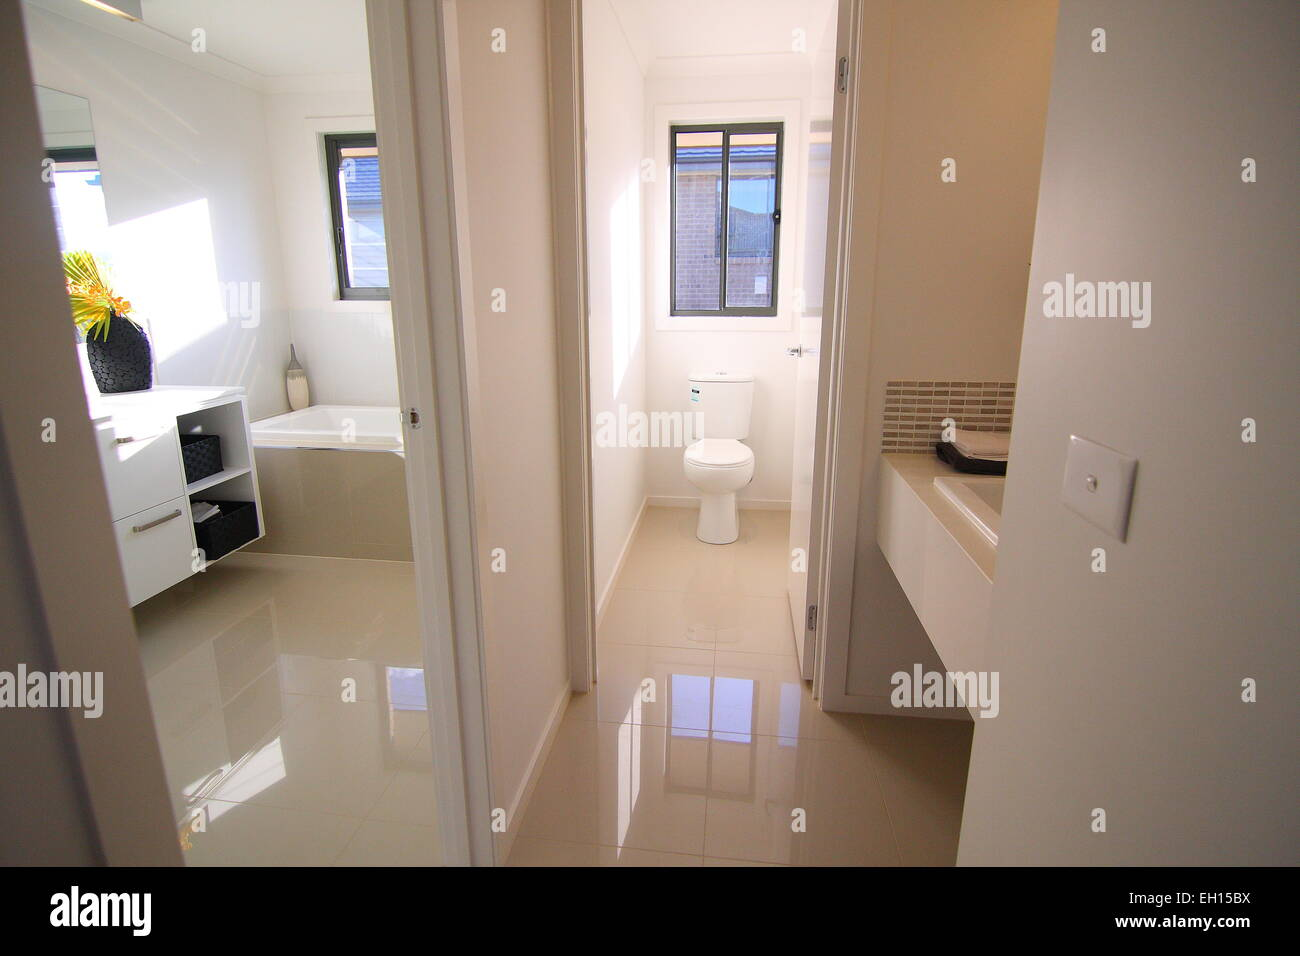 Modern Bathroom With Separate Toilet Stock Photo 79316830 Alamy